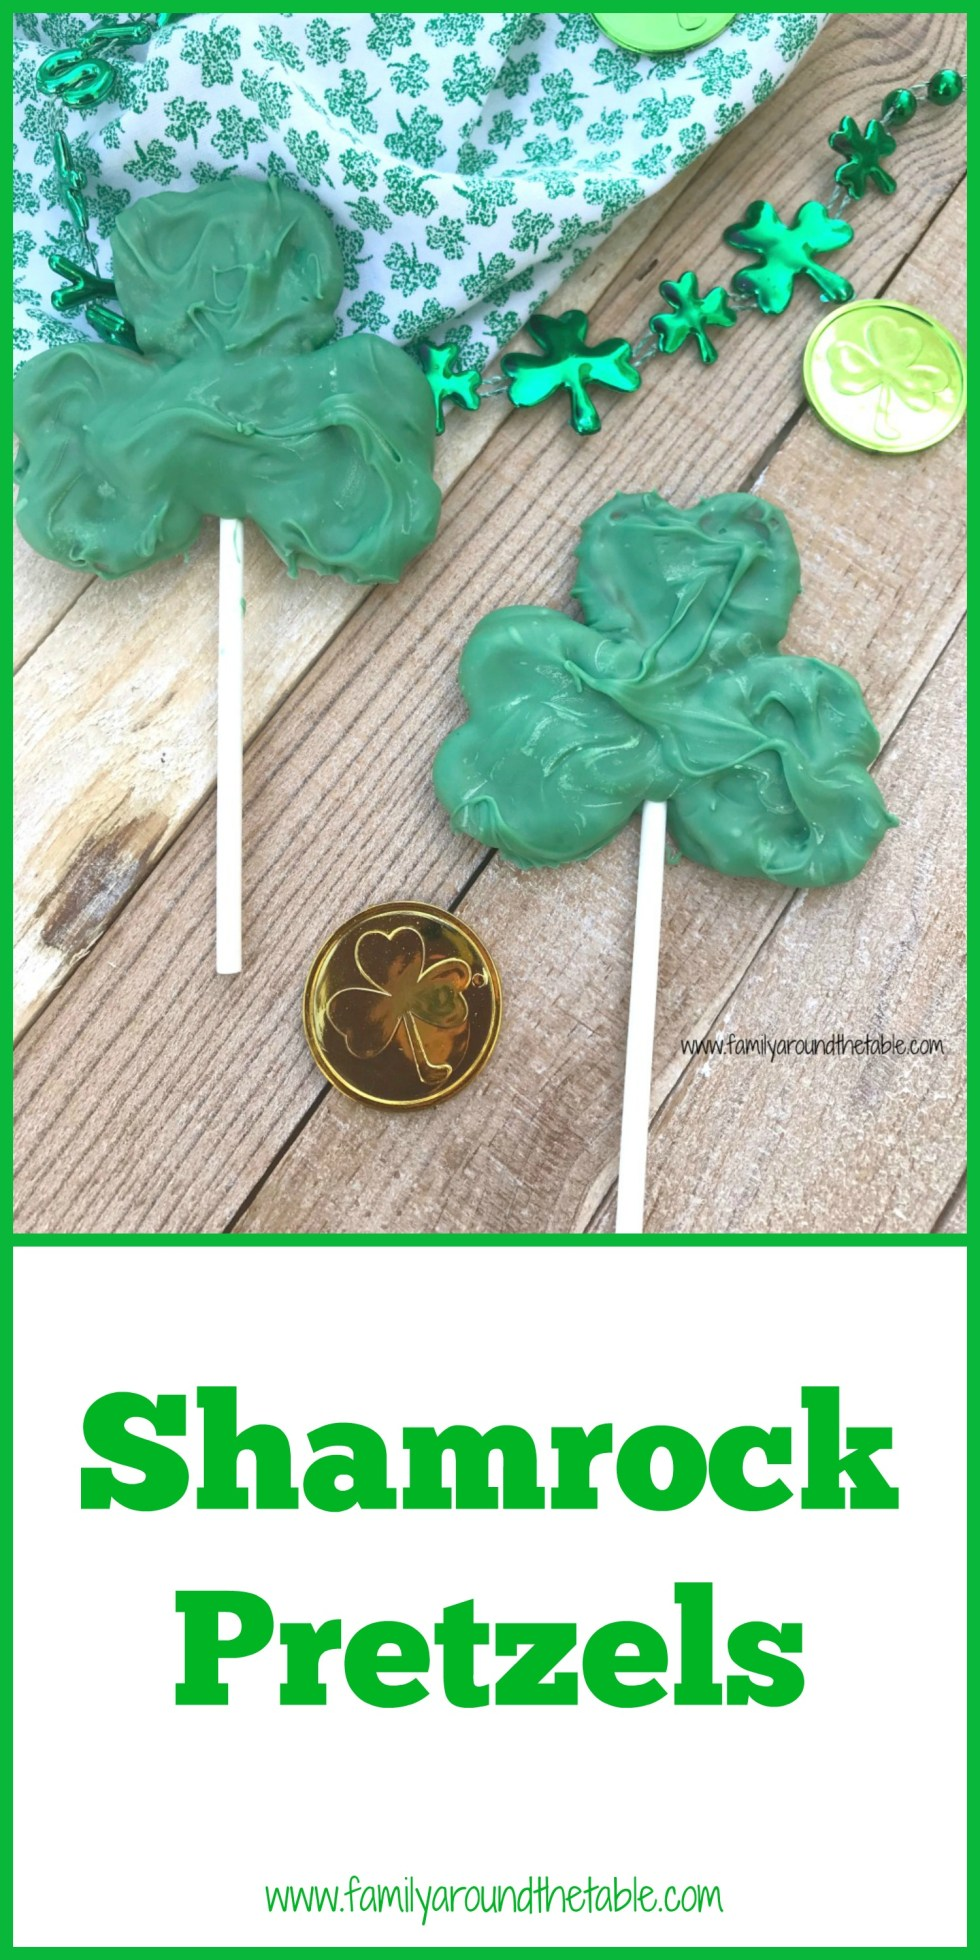 Pretzel shamrocks are a fun St. Patrick's Day treat.